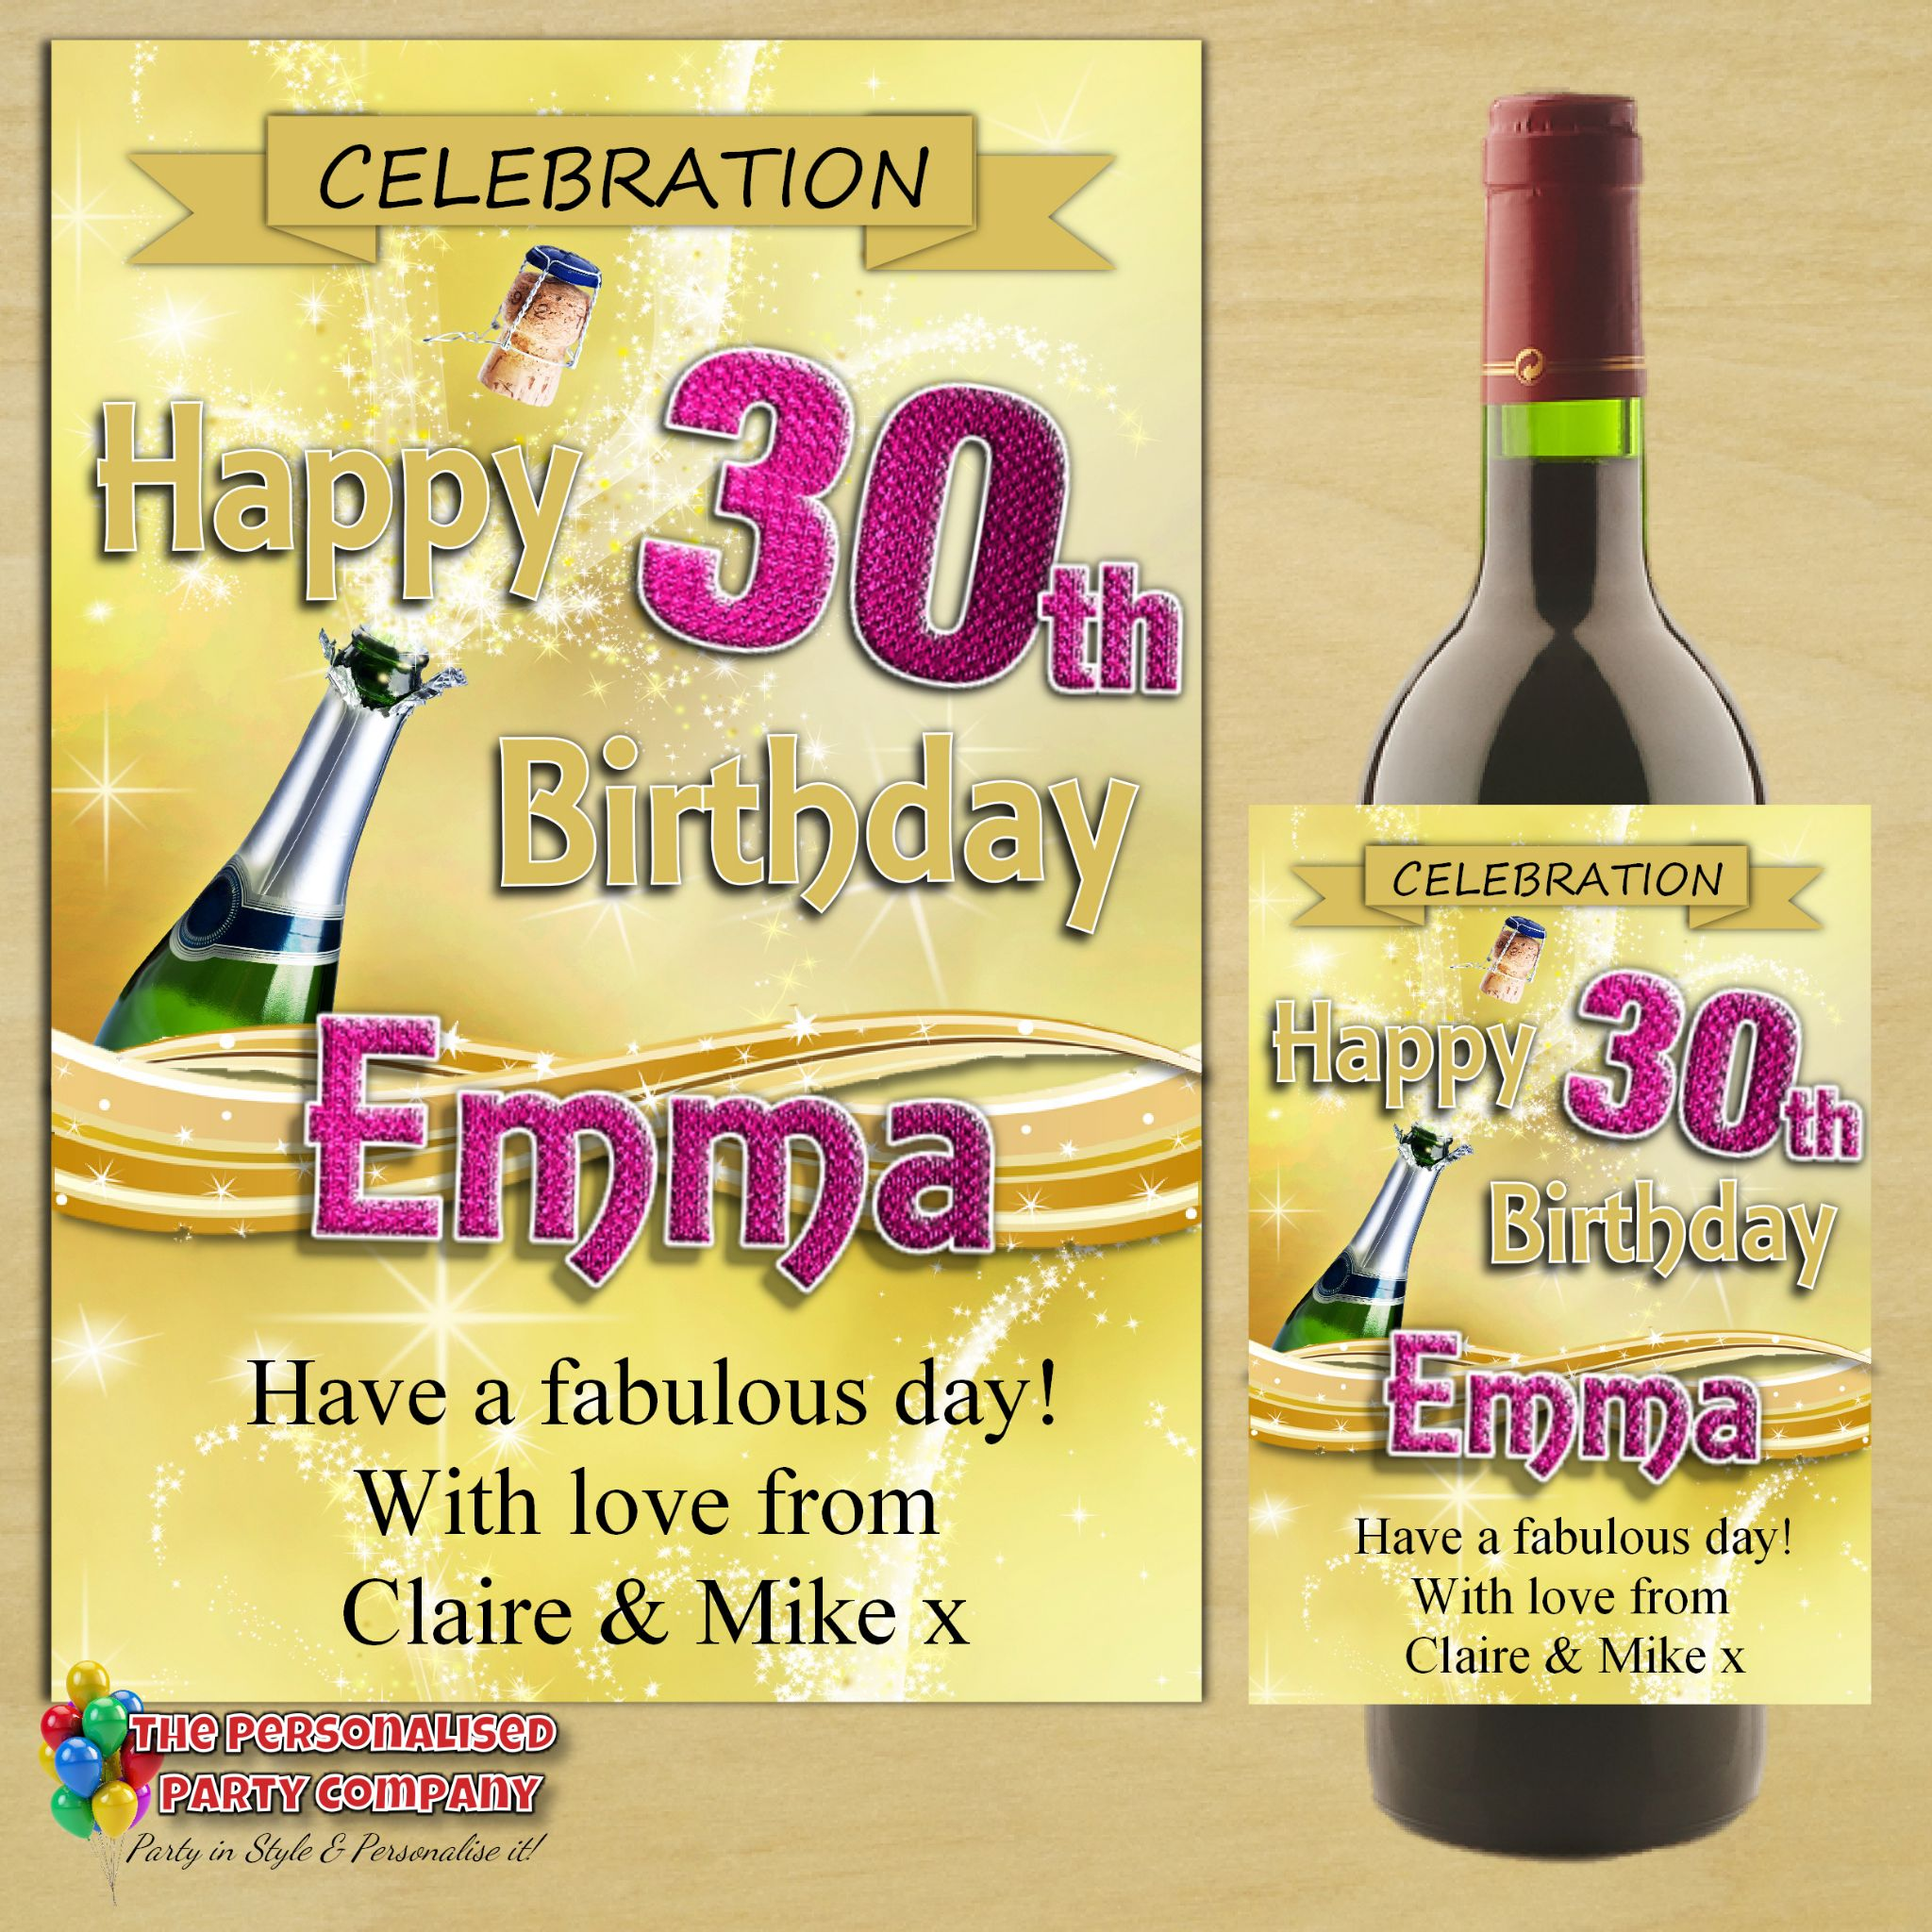 personalised birthday labels ; personalised-happy-birthday-wine-champagne-bottle-label-n71-gold-champagne-burst-bottle-label-size-champagne-bottle-13cm-w-x-9cm-h-14137-p